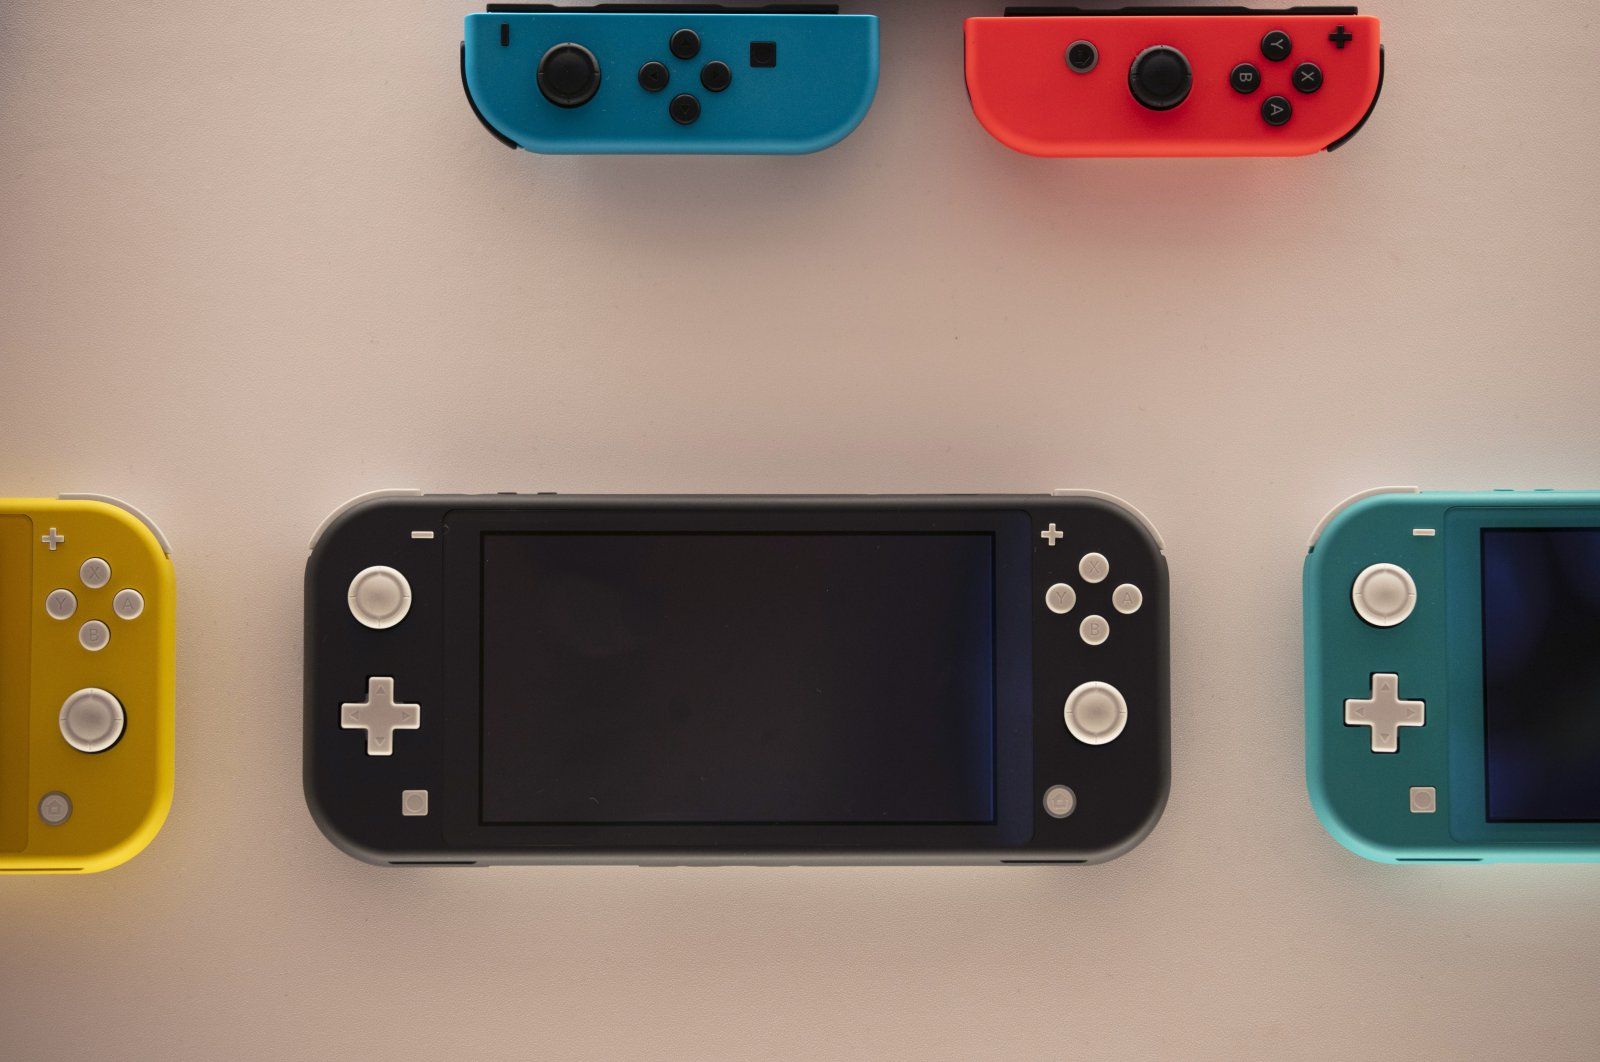 Nintendo Switch game consoles are on display at Nintendo's official store in the Shibuya district of Tokyo, Japan, Jan. 23, 2020. (AP Photo)